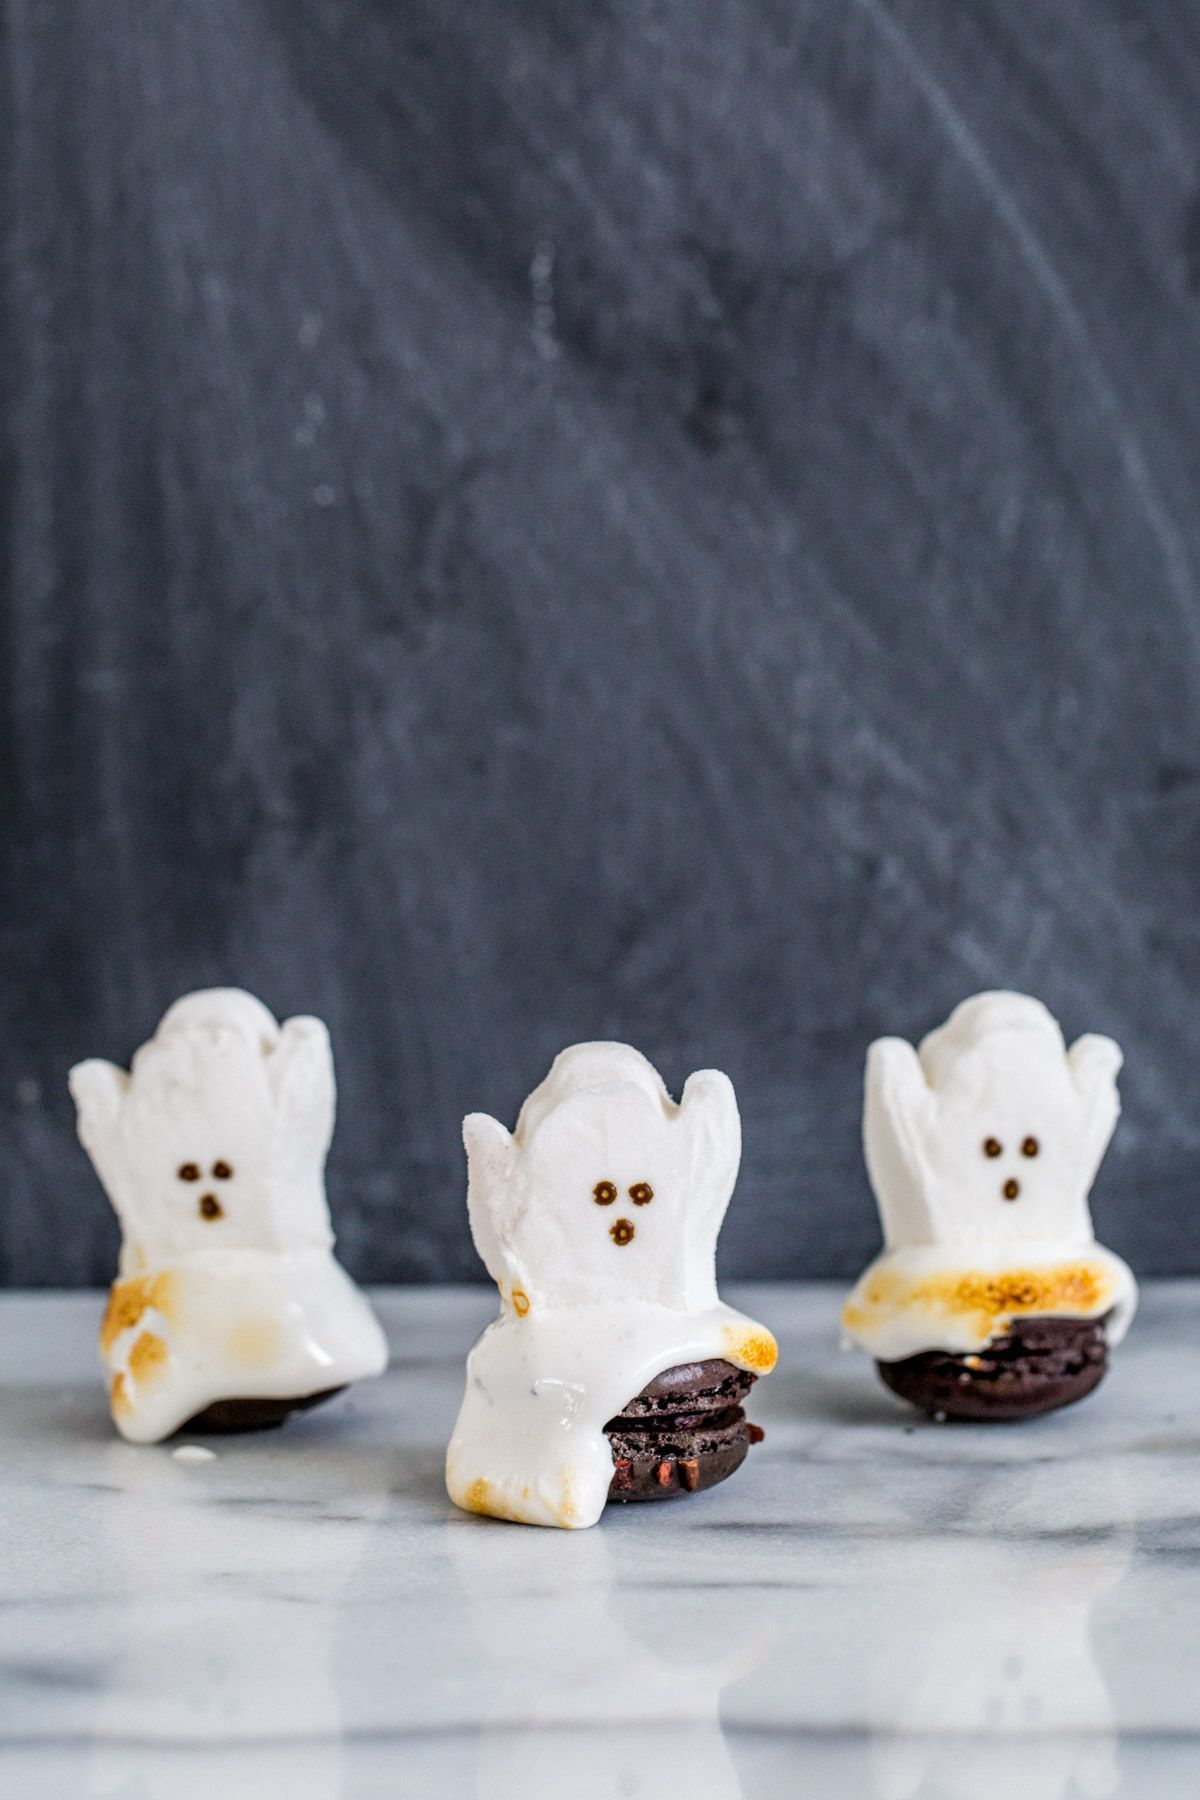 Easy Halloween Dessert: DIY Ghost Macarons #halloweenmacarons We're topped a dessert with another dessert, with another dessert with these DIY Melting Ghost Halloween Macarons, and I love it!... #halloweenmacarons Easy Halloween Dessert: DIY Ghost Macarons #halloweenmacarons We're topped a dessert with another dessert, with another dessert with these DIY Melting Ghost Halloween Macarons, and I love it!... #halloweenmacarons